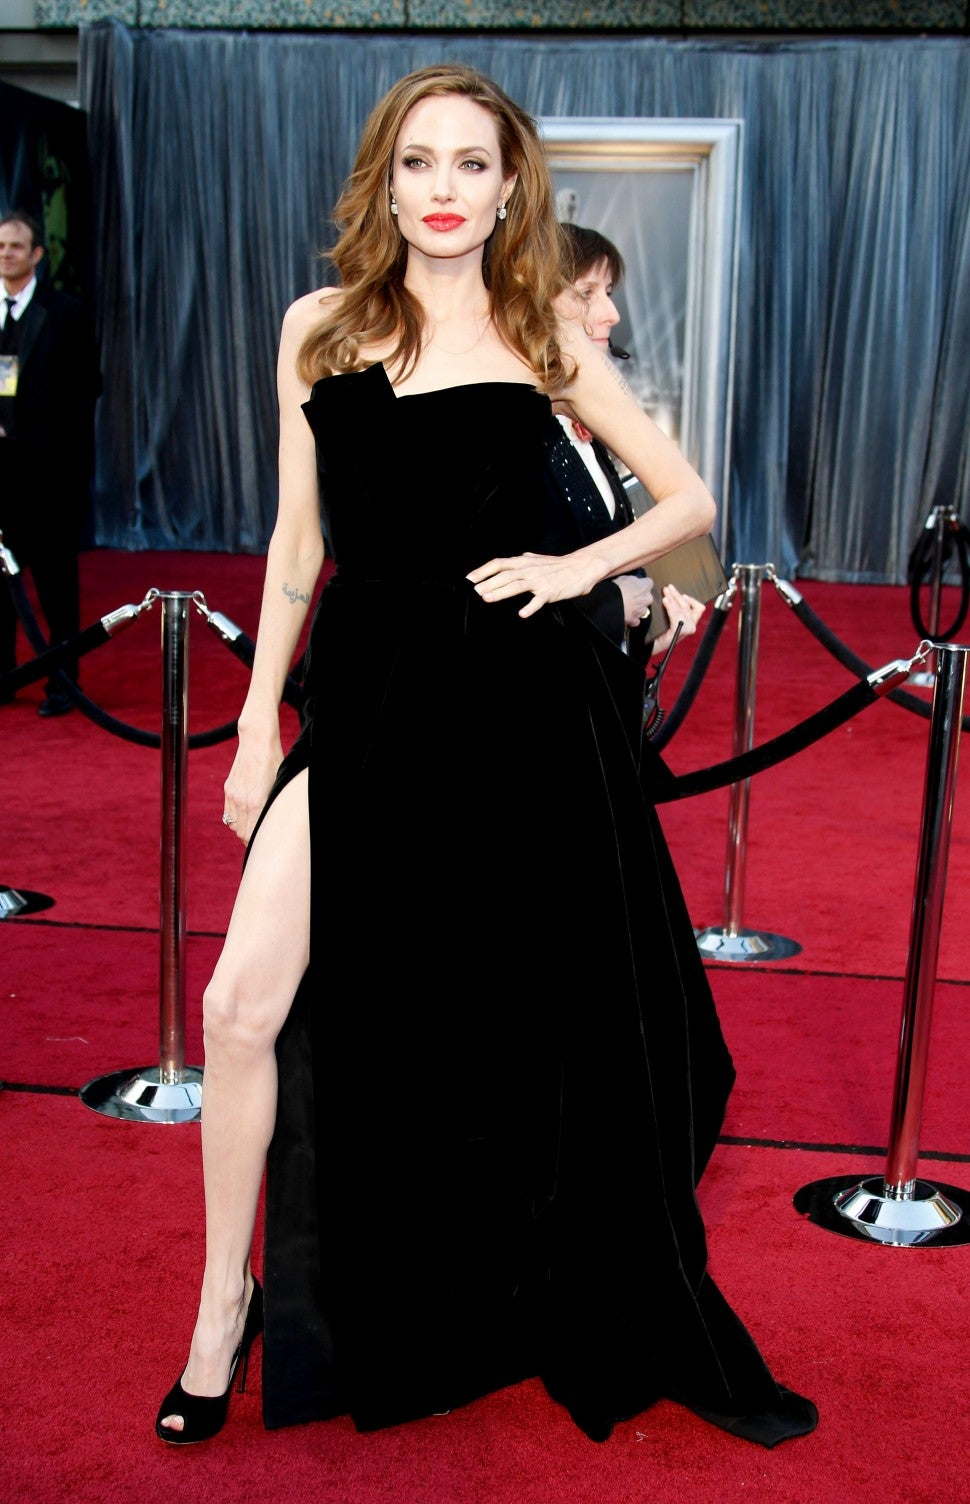 Angelina Jolie Oscars 2012 dress